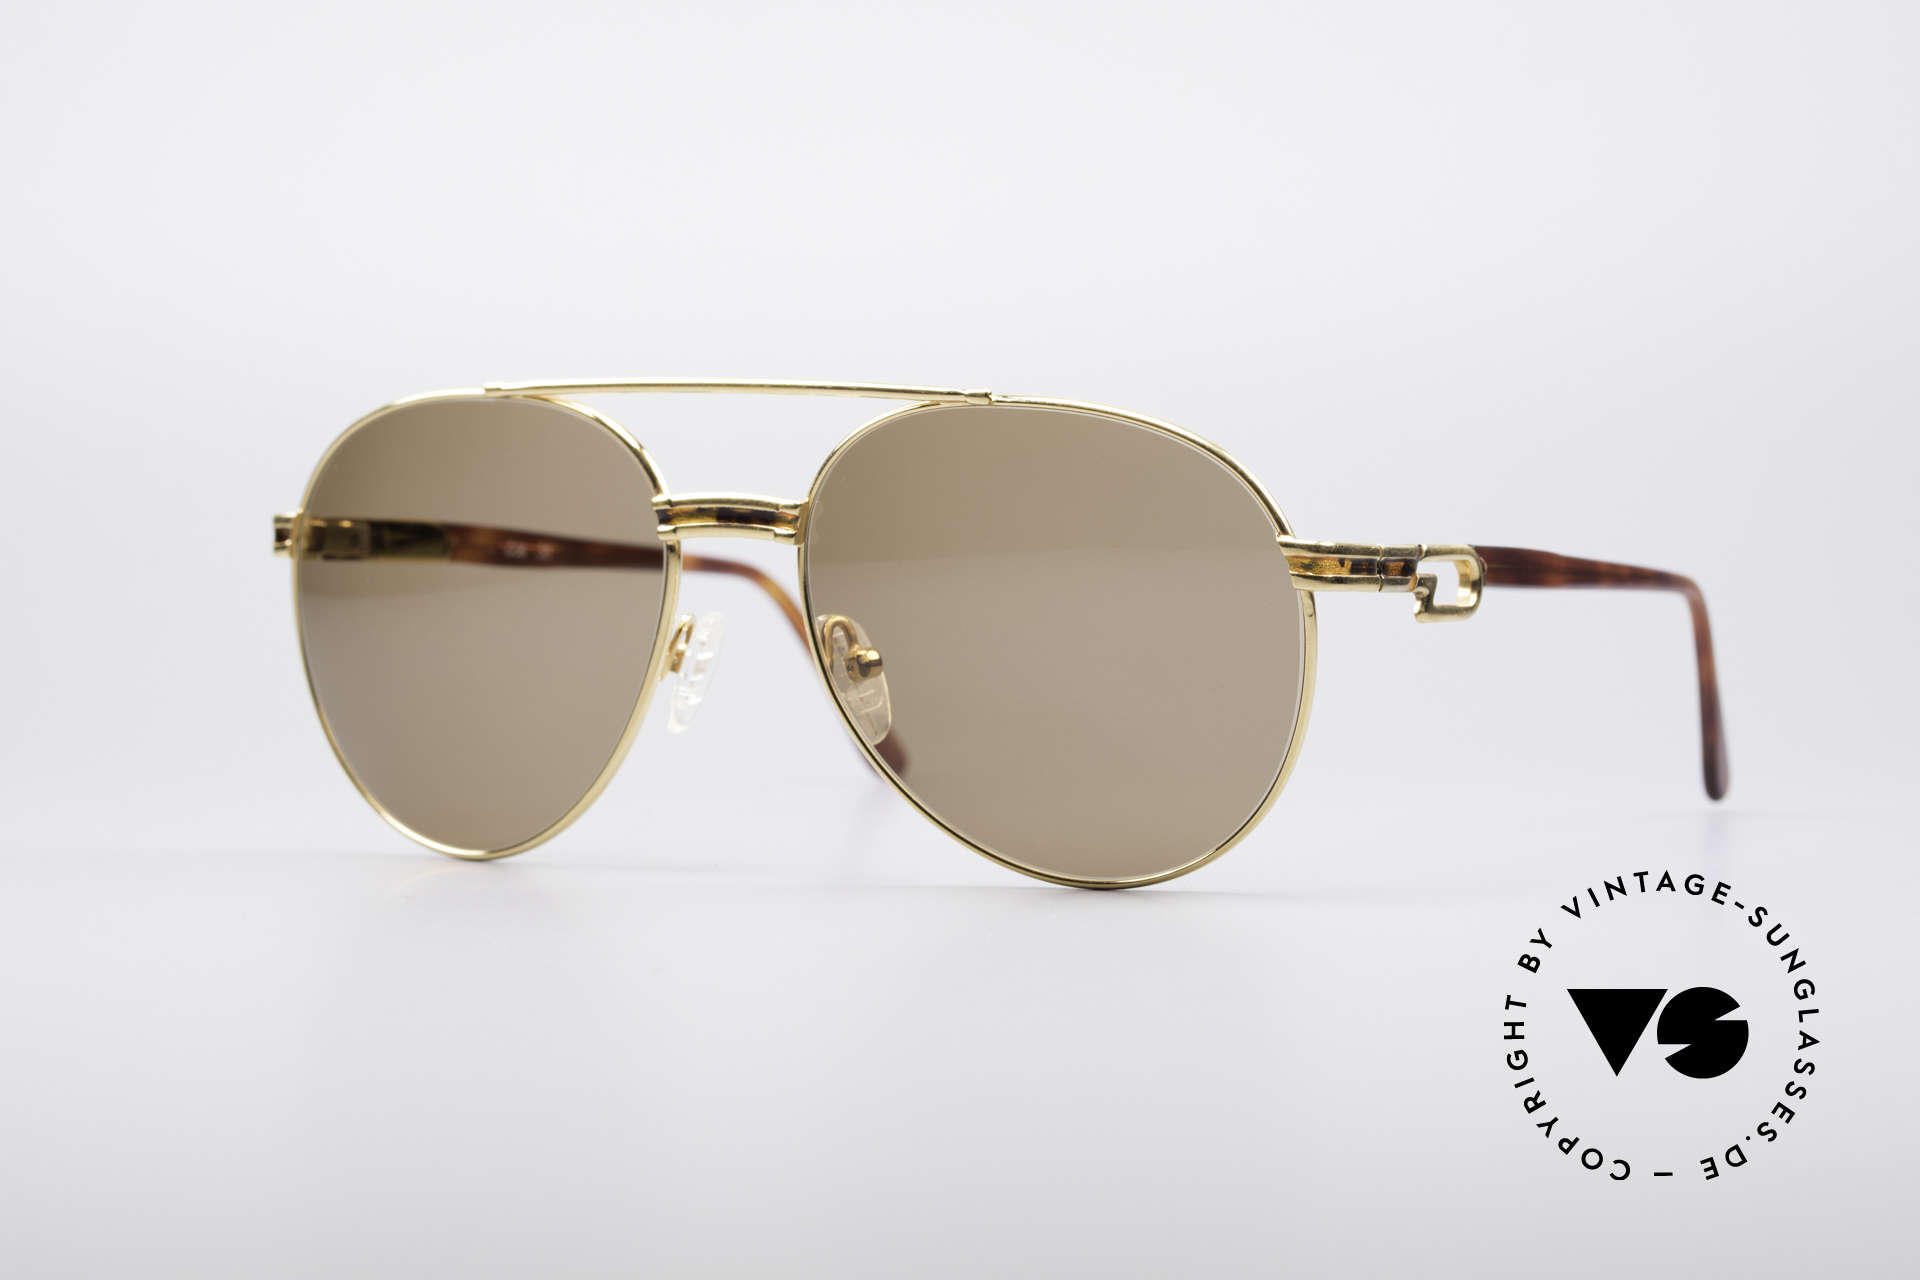 Derapage D2 Vintage No Retro Shades, timeless DERAPAGE vintage 90's sunglasses, Made for Men